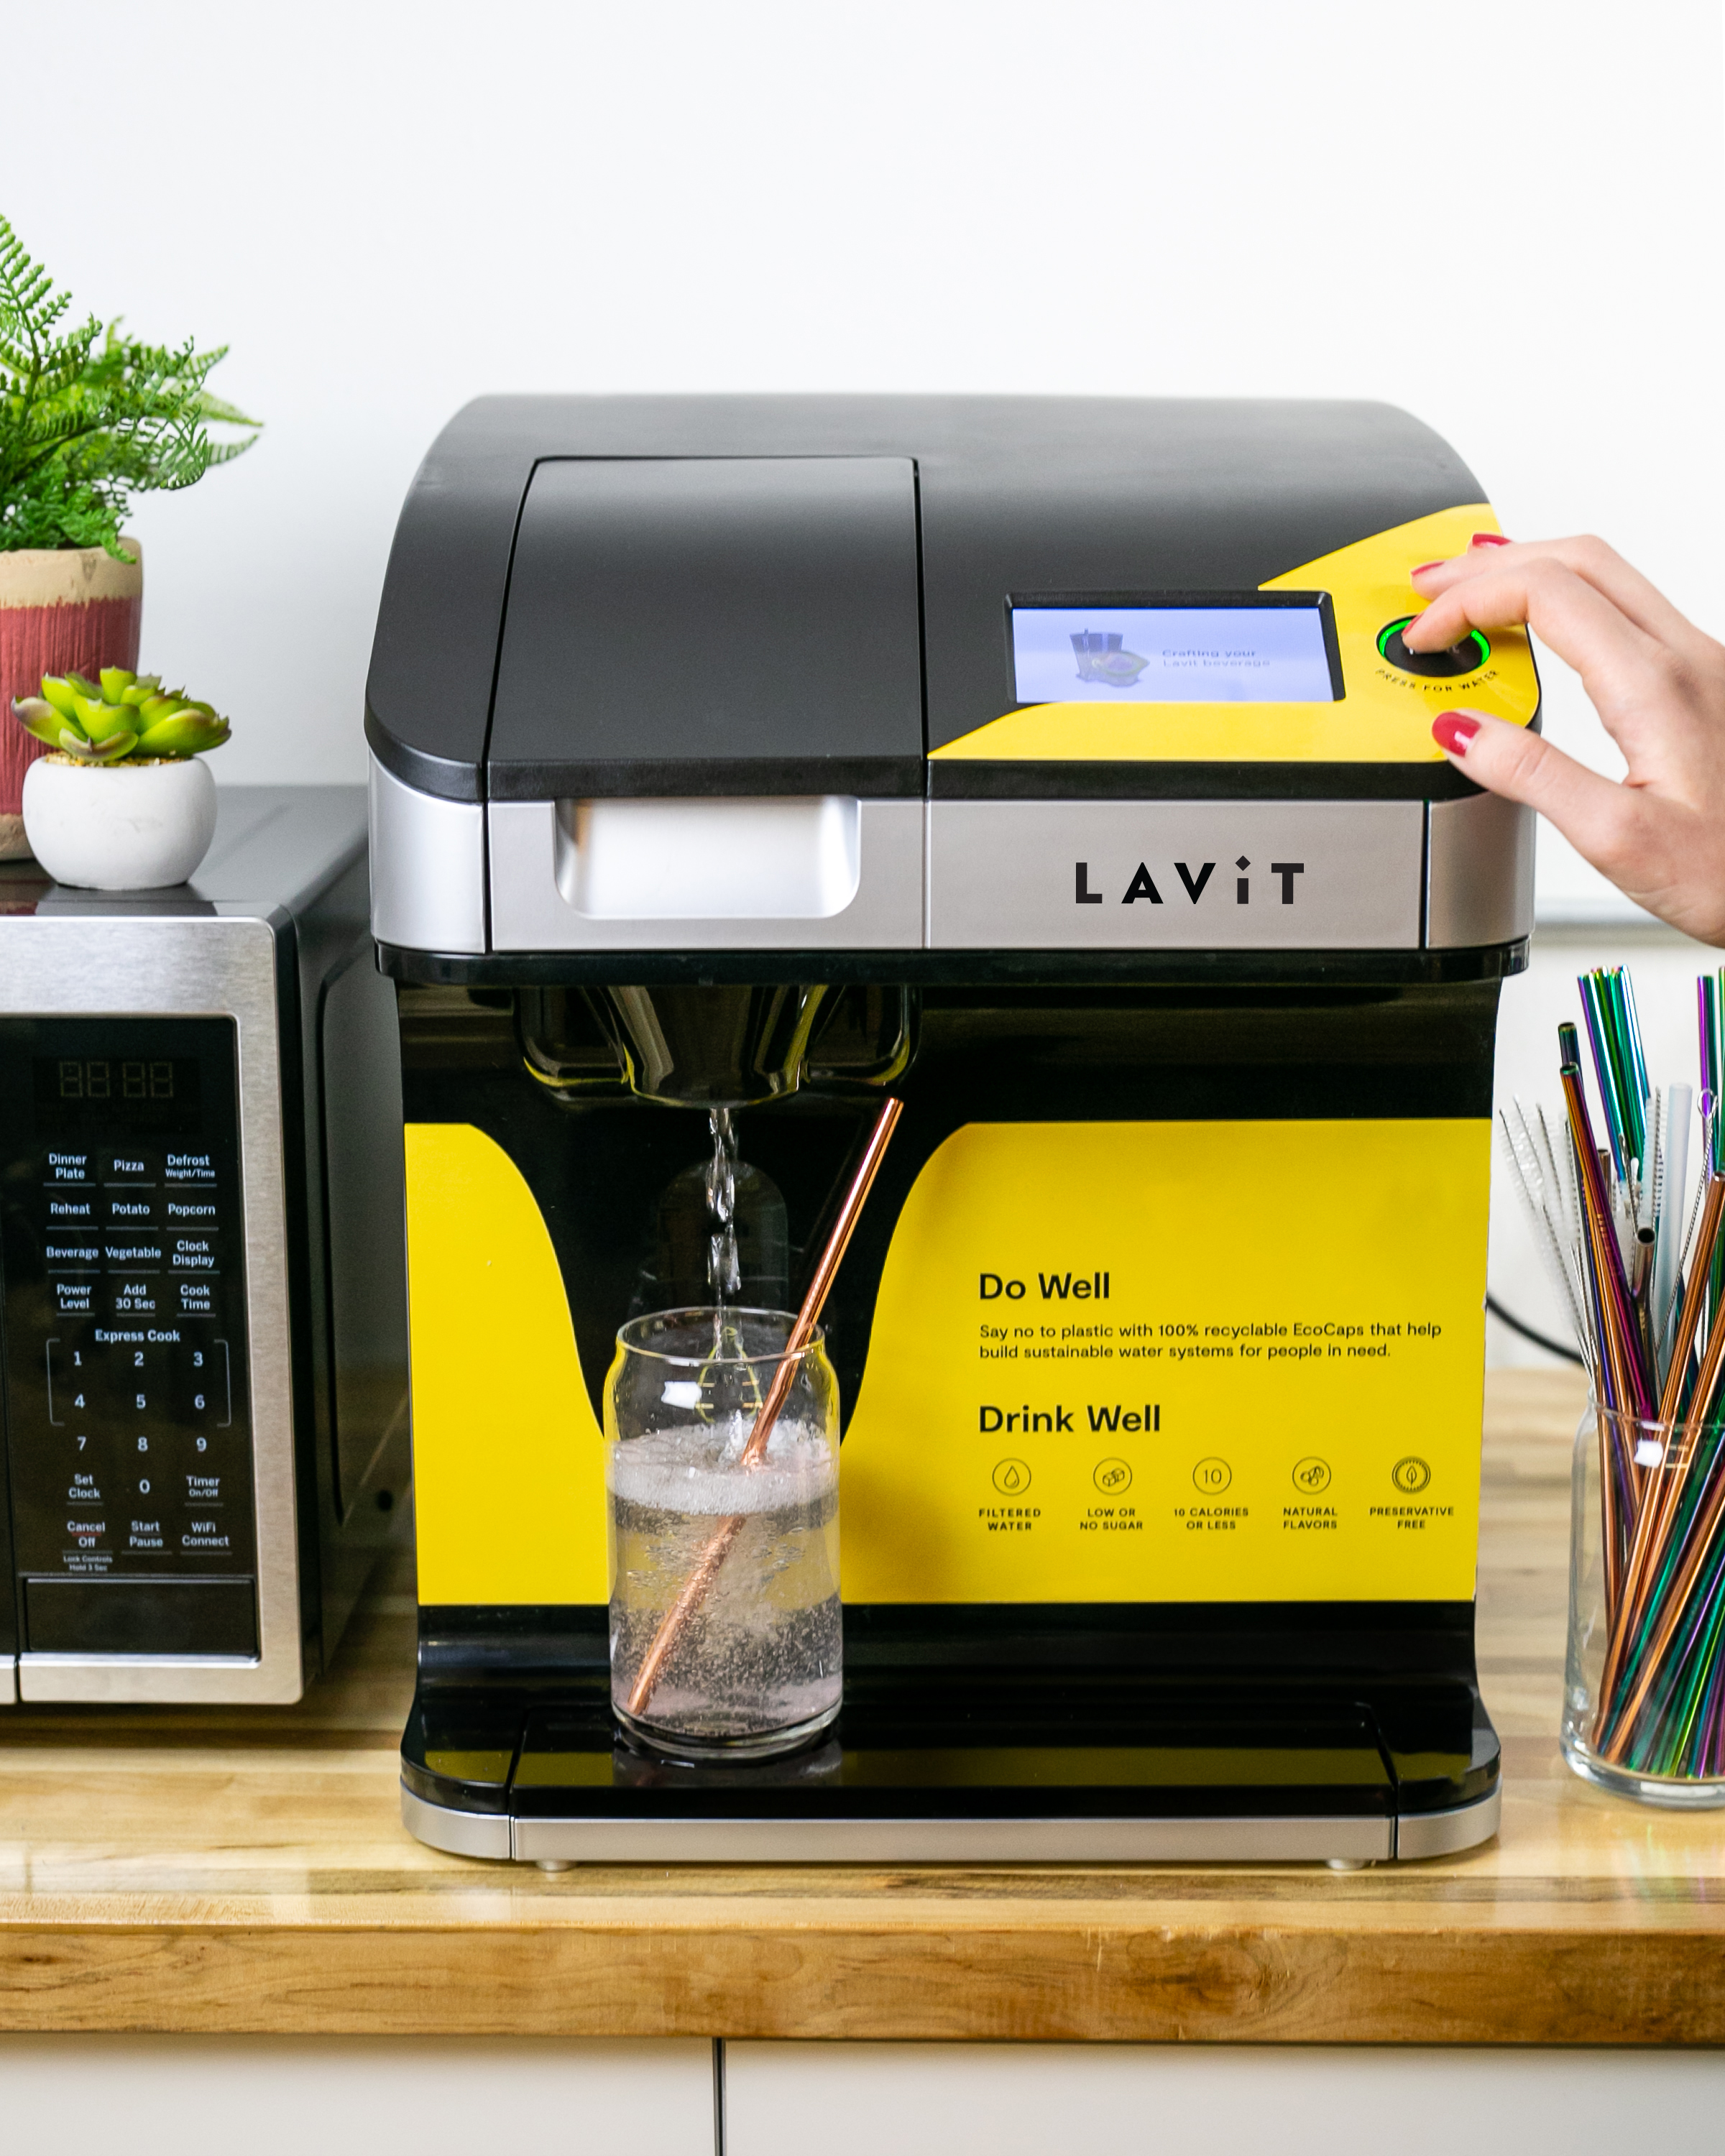 OurMachine - Lavit is a machine that sits atop your counter and provides still & sparkling water that's been filtered & chilled. Plus tons of other beverage options. And that's it. No hidden equipment, no weird requirements.